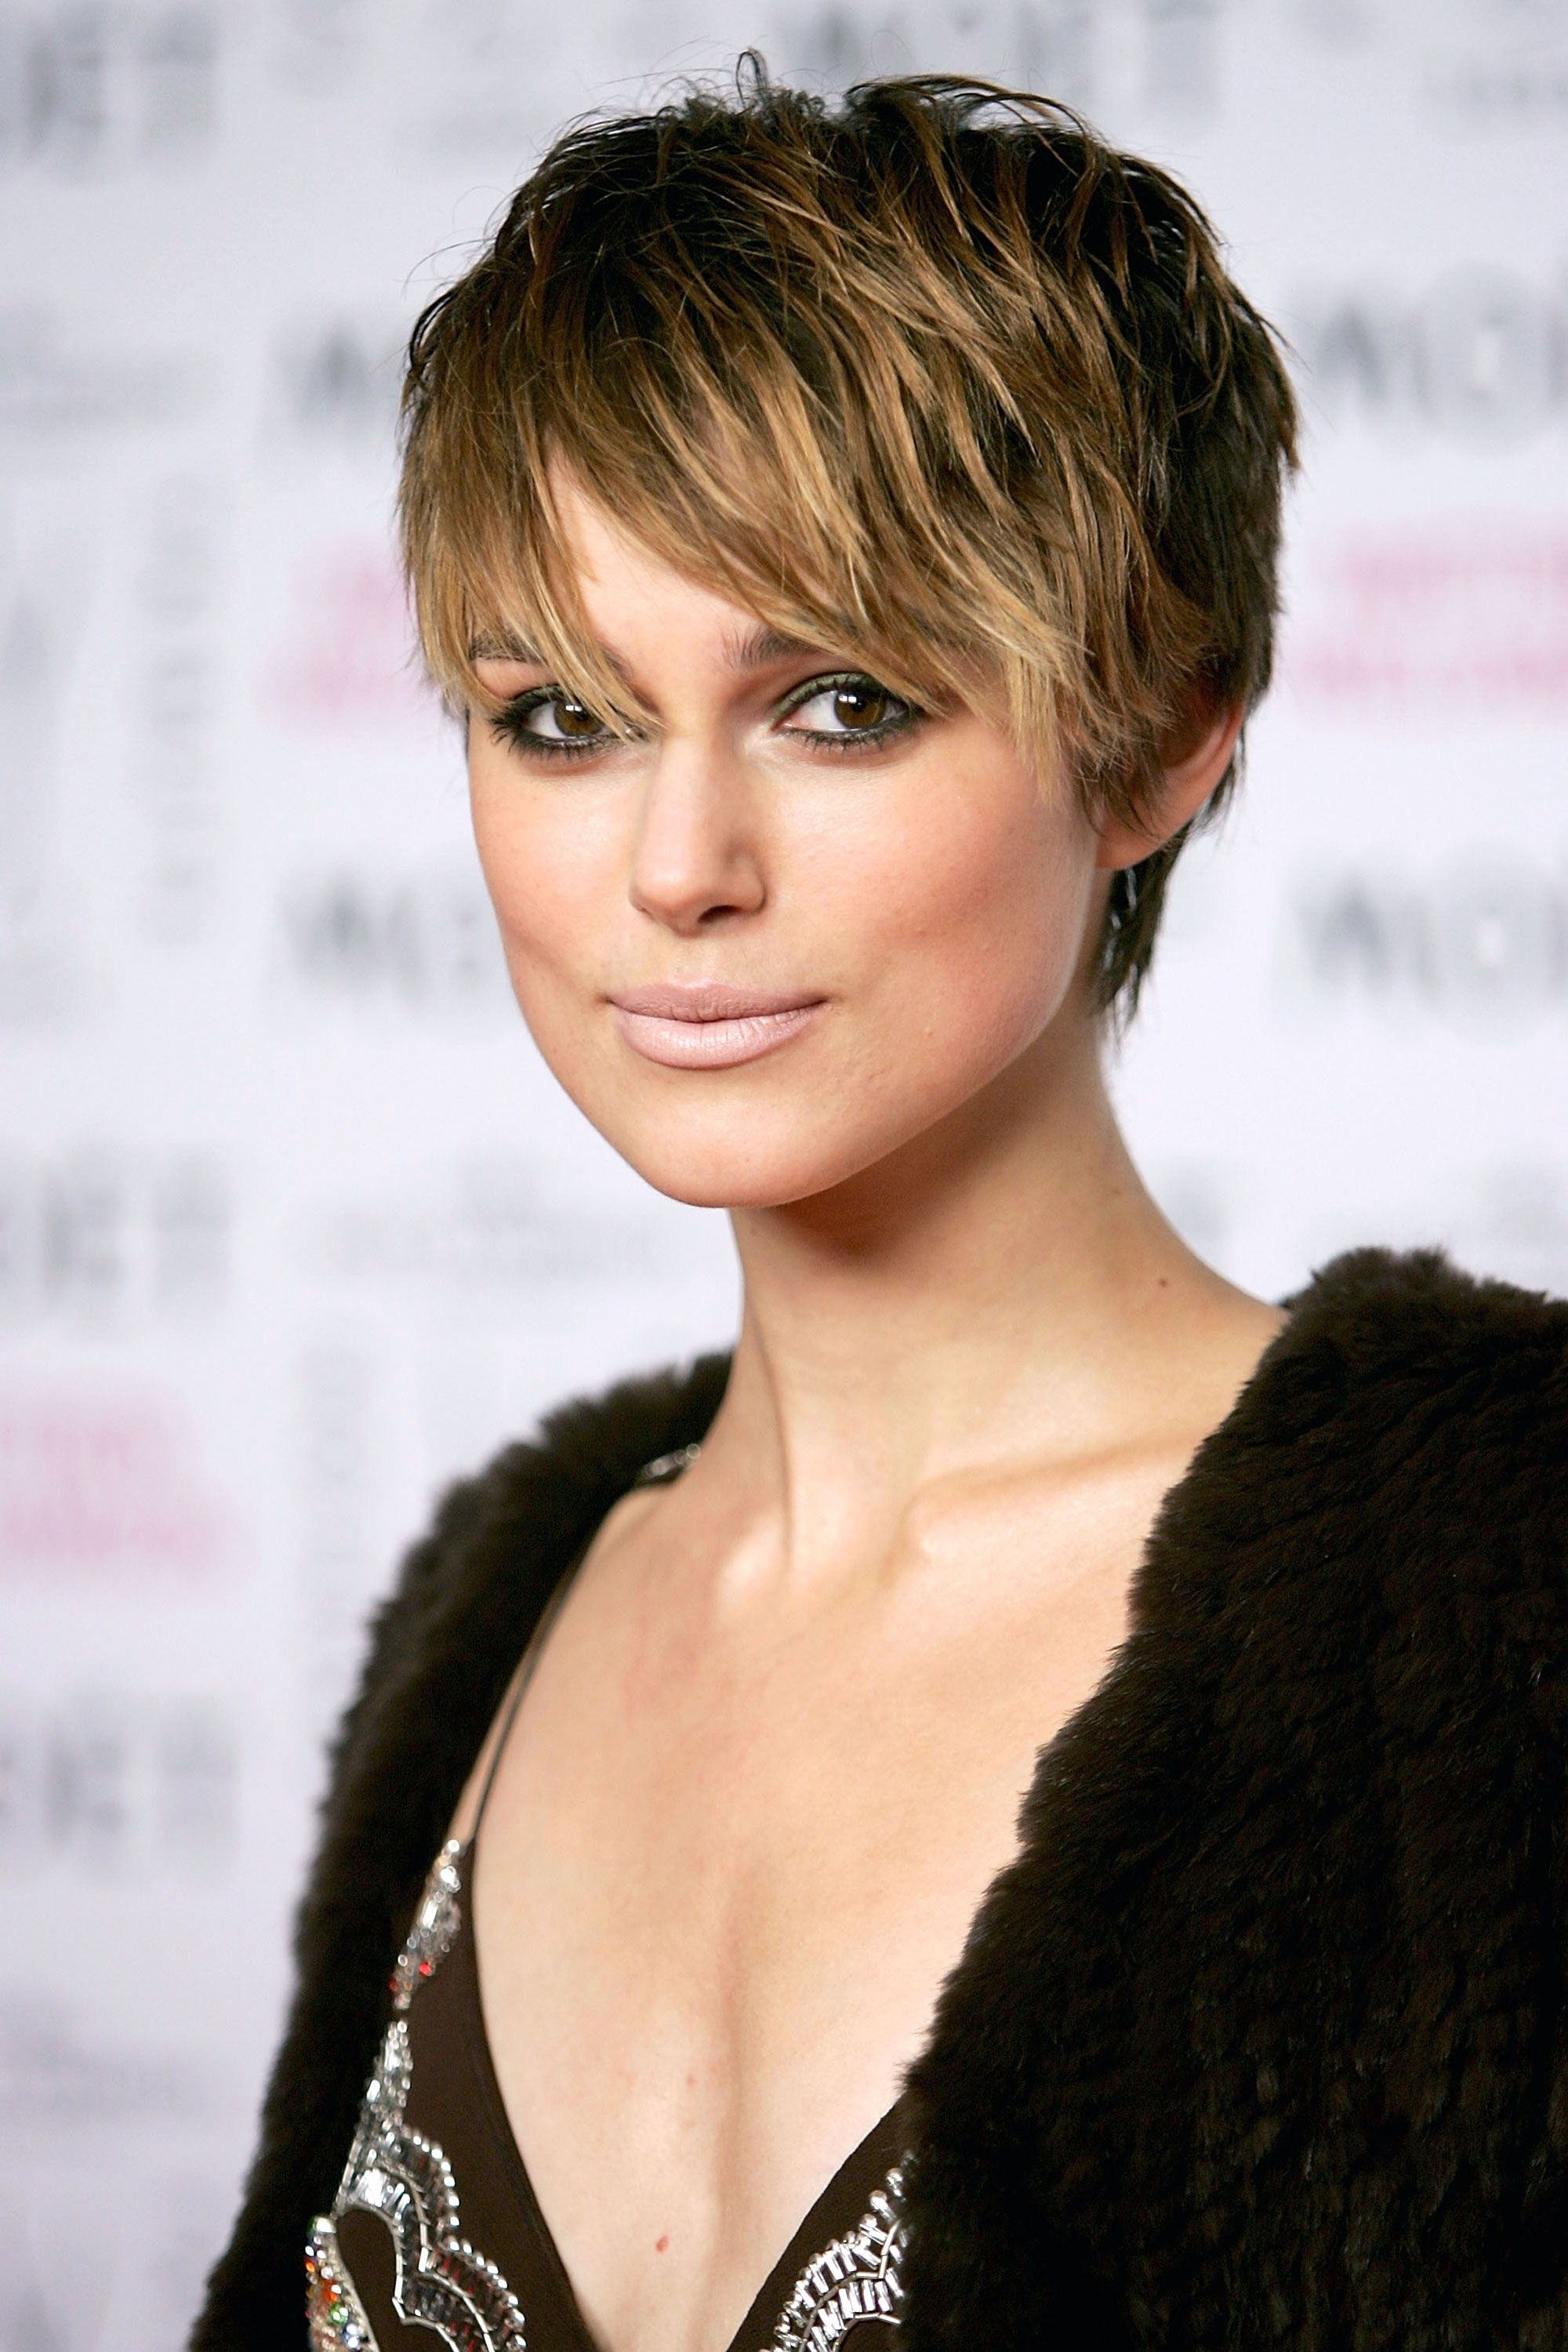 The Top Pixie Haircuts Of All Time | Short Cuts | Pinterest | Pixie in Pixie Haircut For Square Face